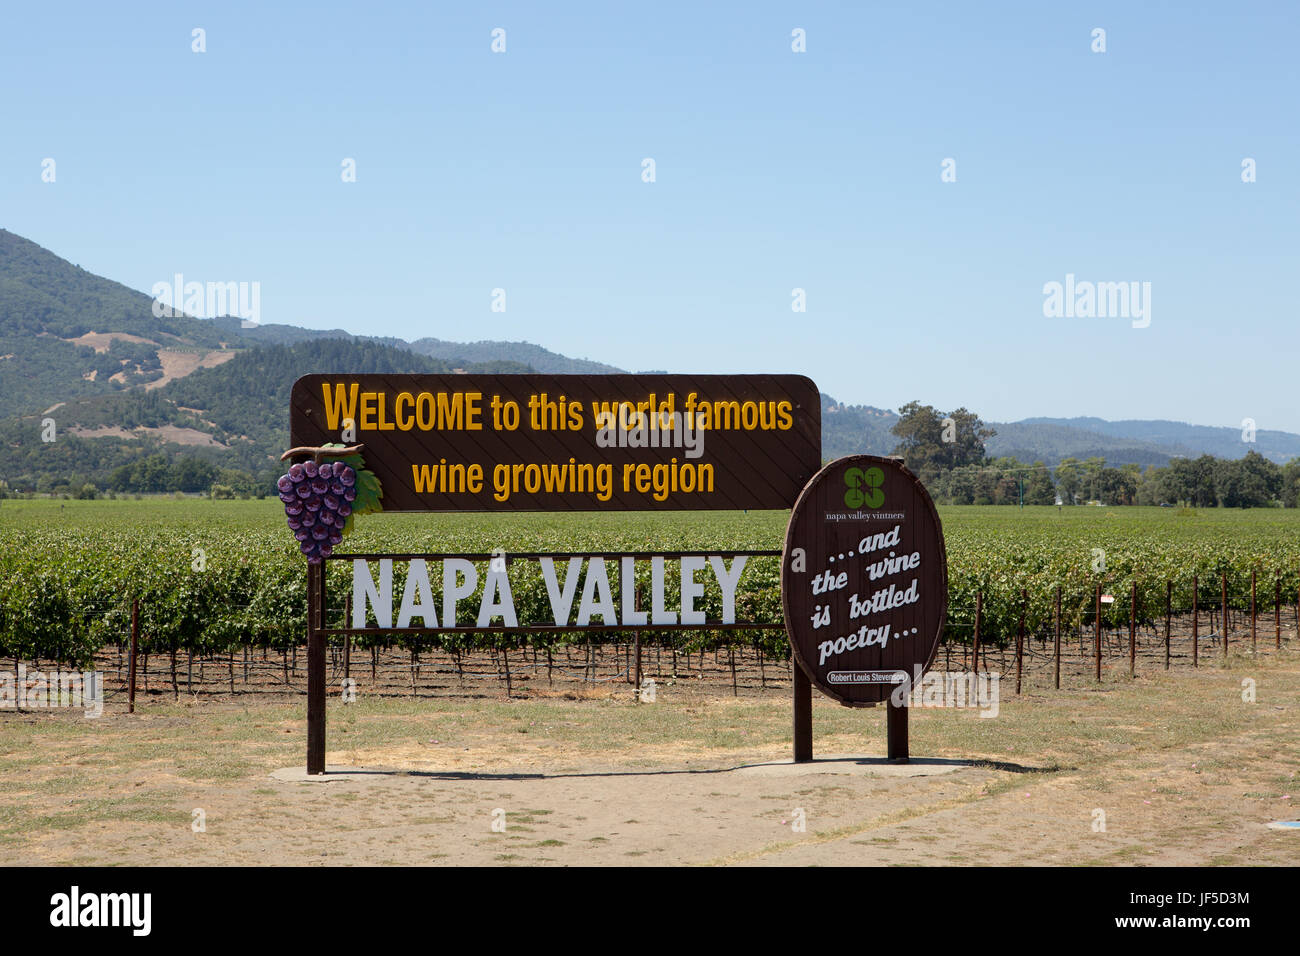 A sign welcoming people to the world famous wine growing region of Napa Valley. - Stock Image